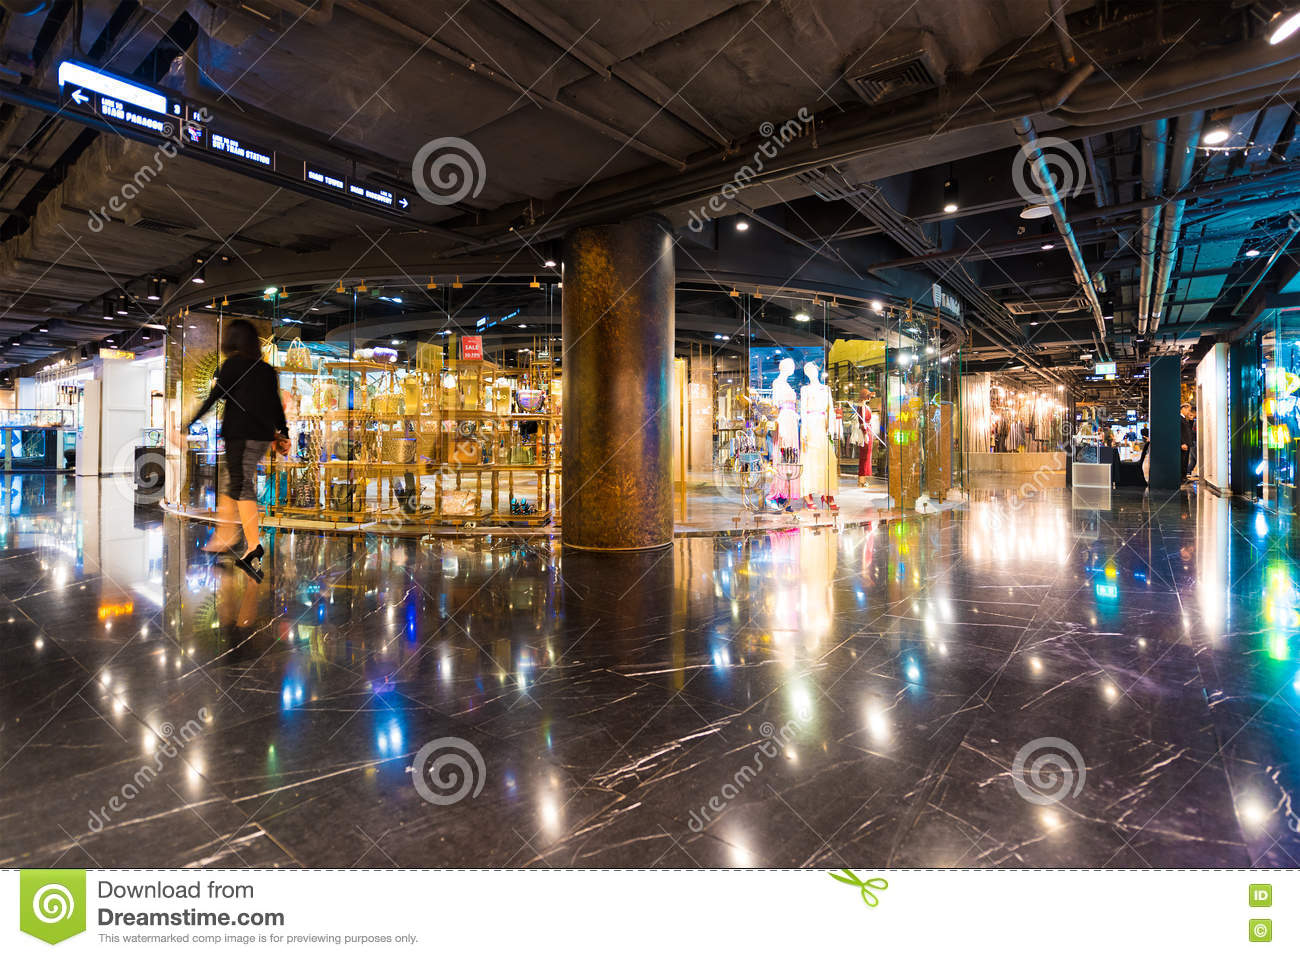 ee53831408 BANGKOK - MARCH 17, 2016 : A view at the Tango store in the Siam Center. It  was built in 1973 and was one of Bangkoks first shopping malls.